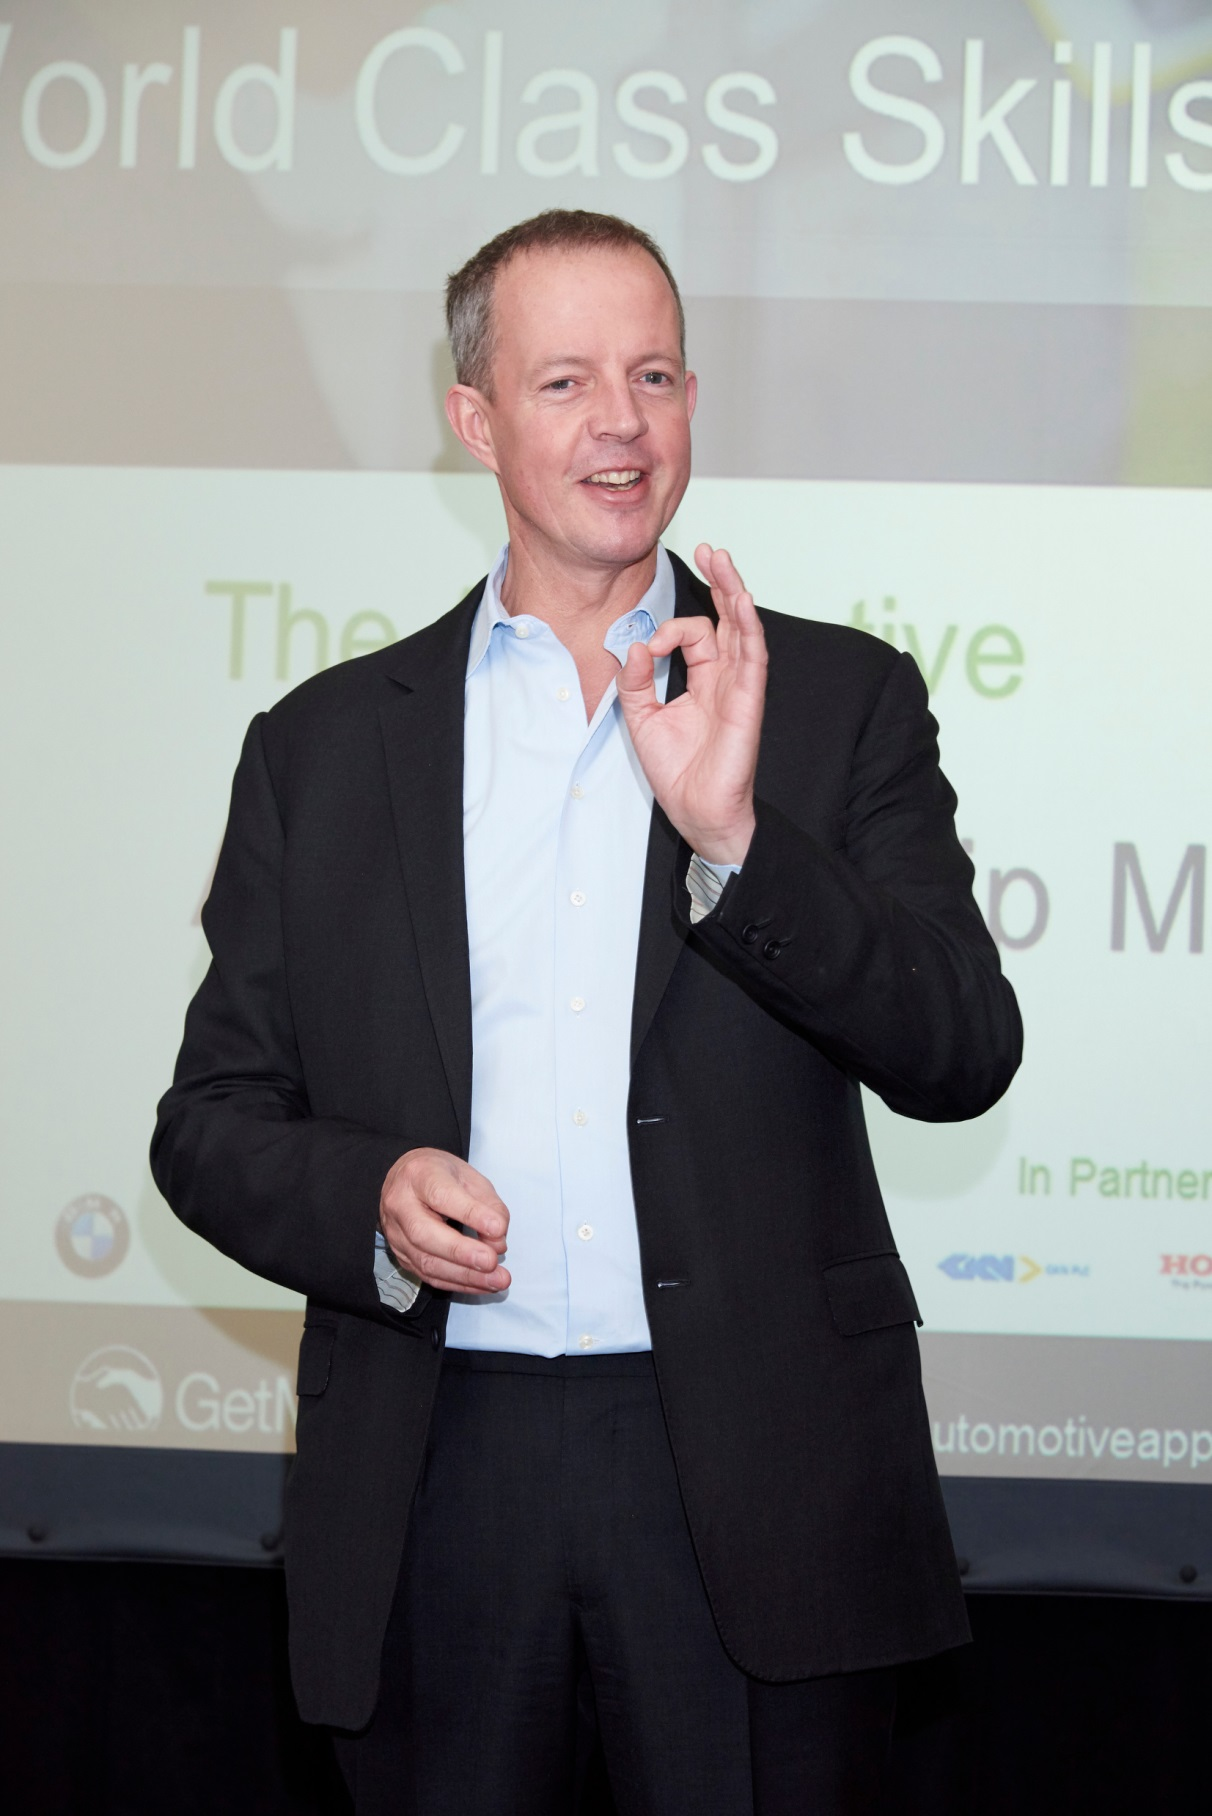 Nick Boles at Automotive Matching Launch Event